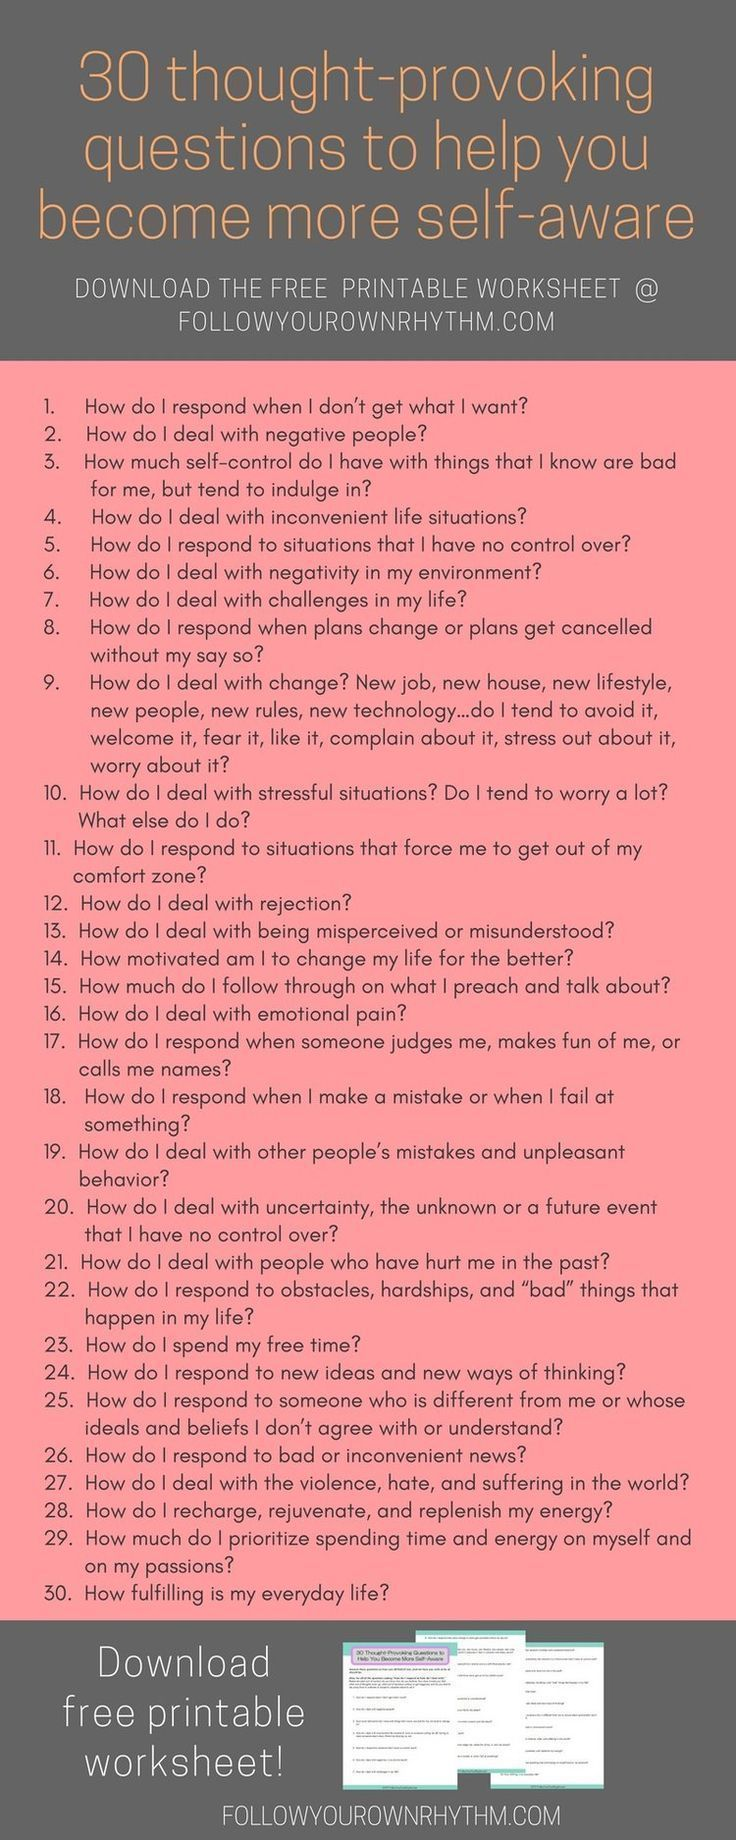 30 ThoughtProvoking Questions to More SelfAware